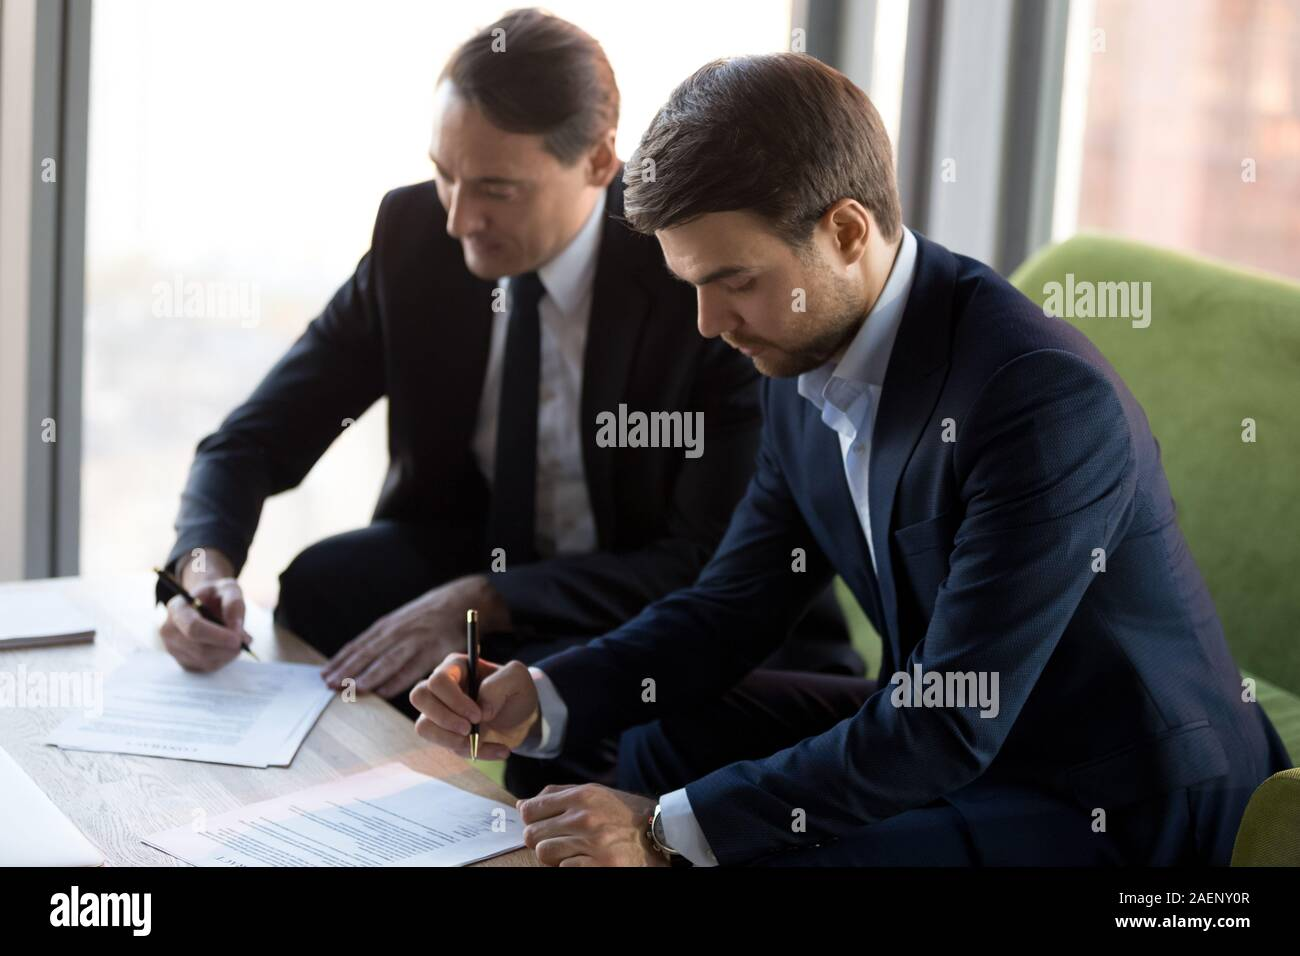 Successful businessmen in suits signing contract, partnership agreement Stock Photo